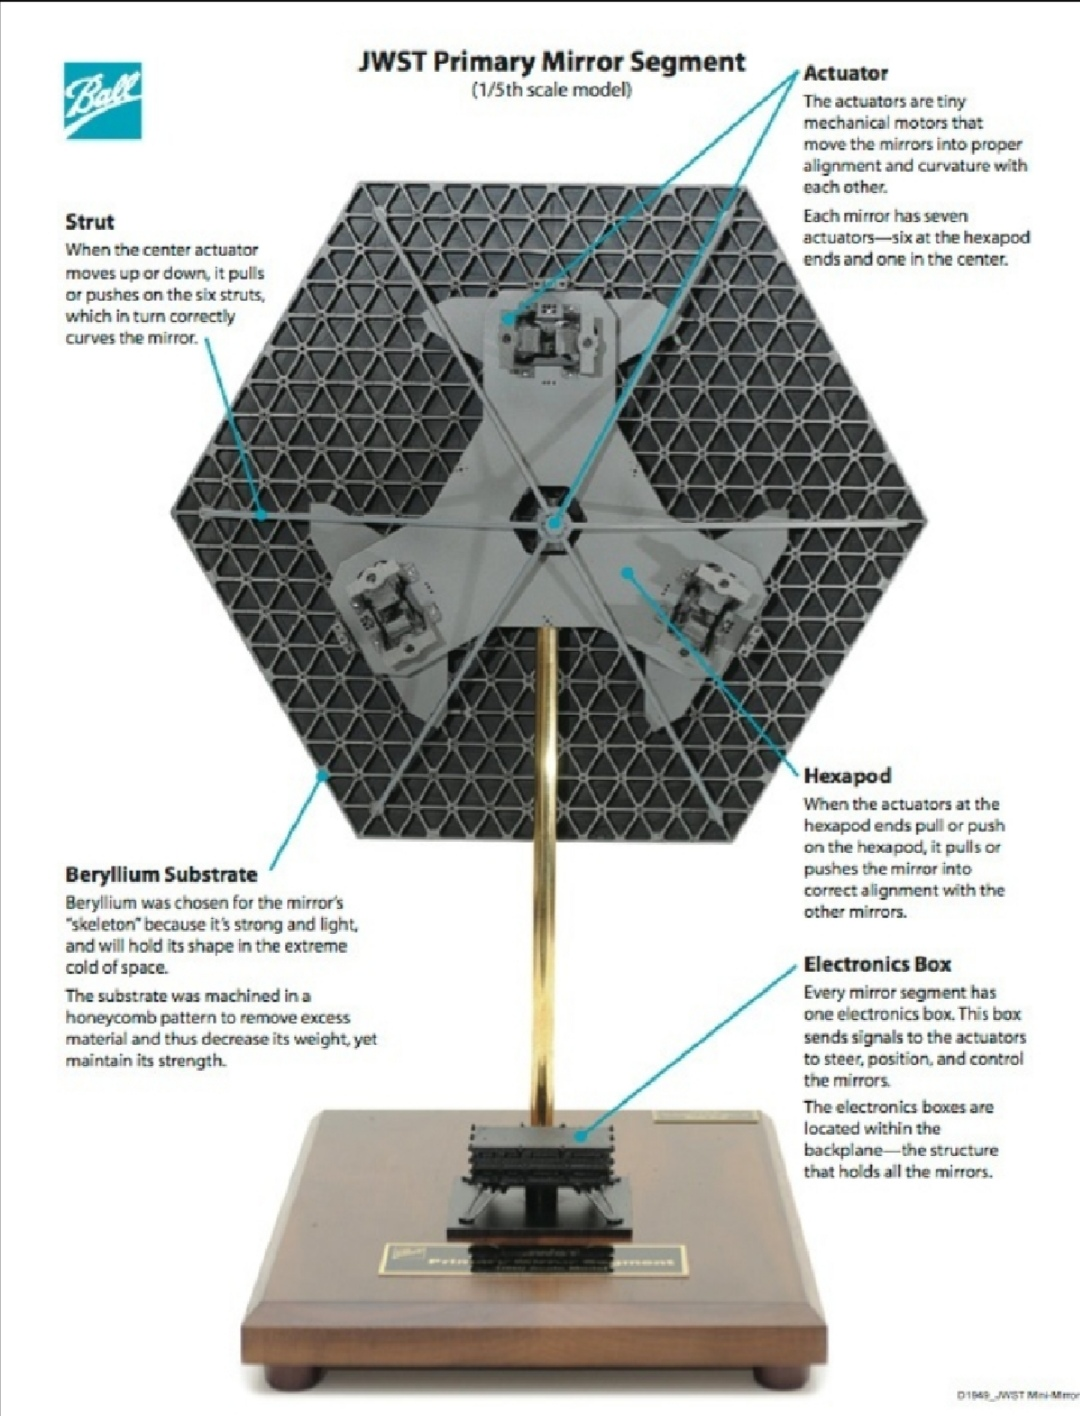 The Back skeleton of one James Webb Space Telescope Mirror showing its honeycomb sections making the entire hexagon strong but lightweight